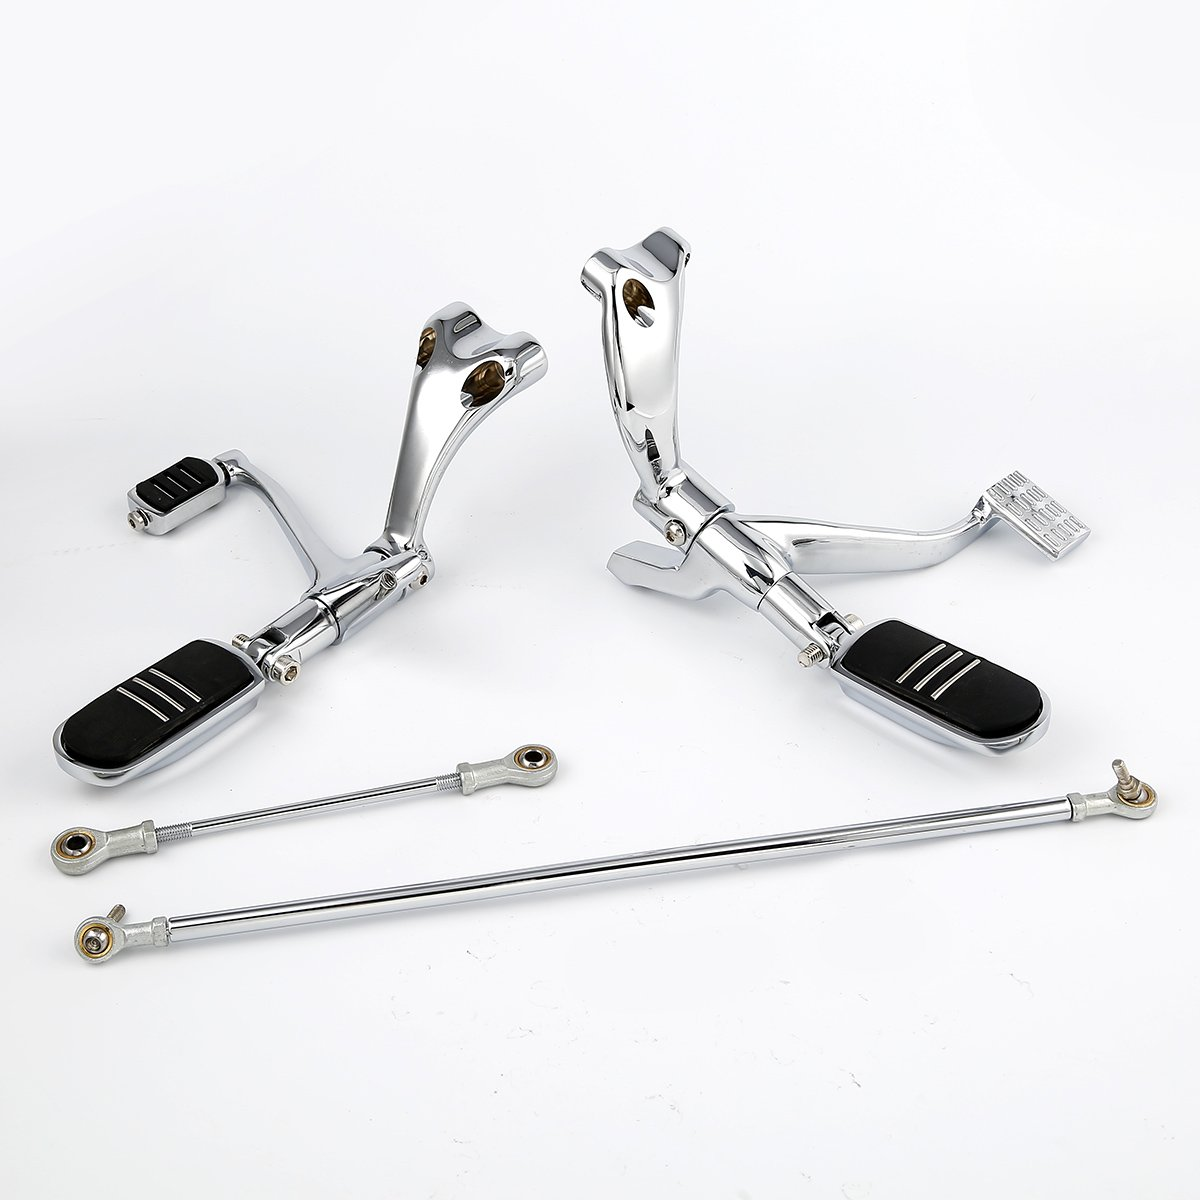 XMT-MOTO Forward Controls W//Pegs Linkage For Harley Sportster 883 1200 XL Custom 2004-2013